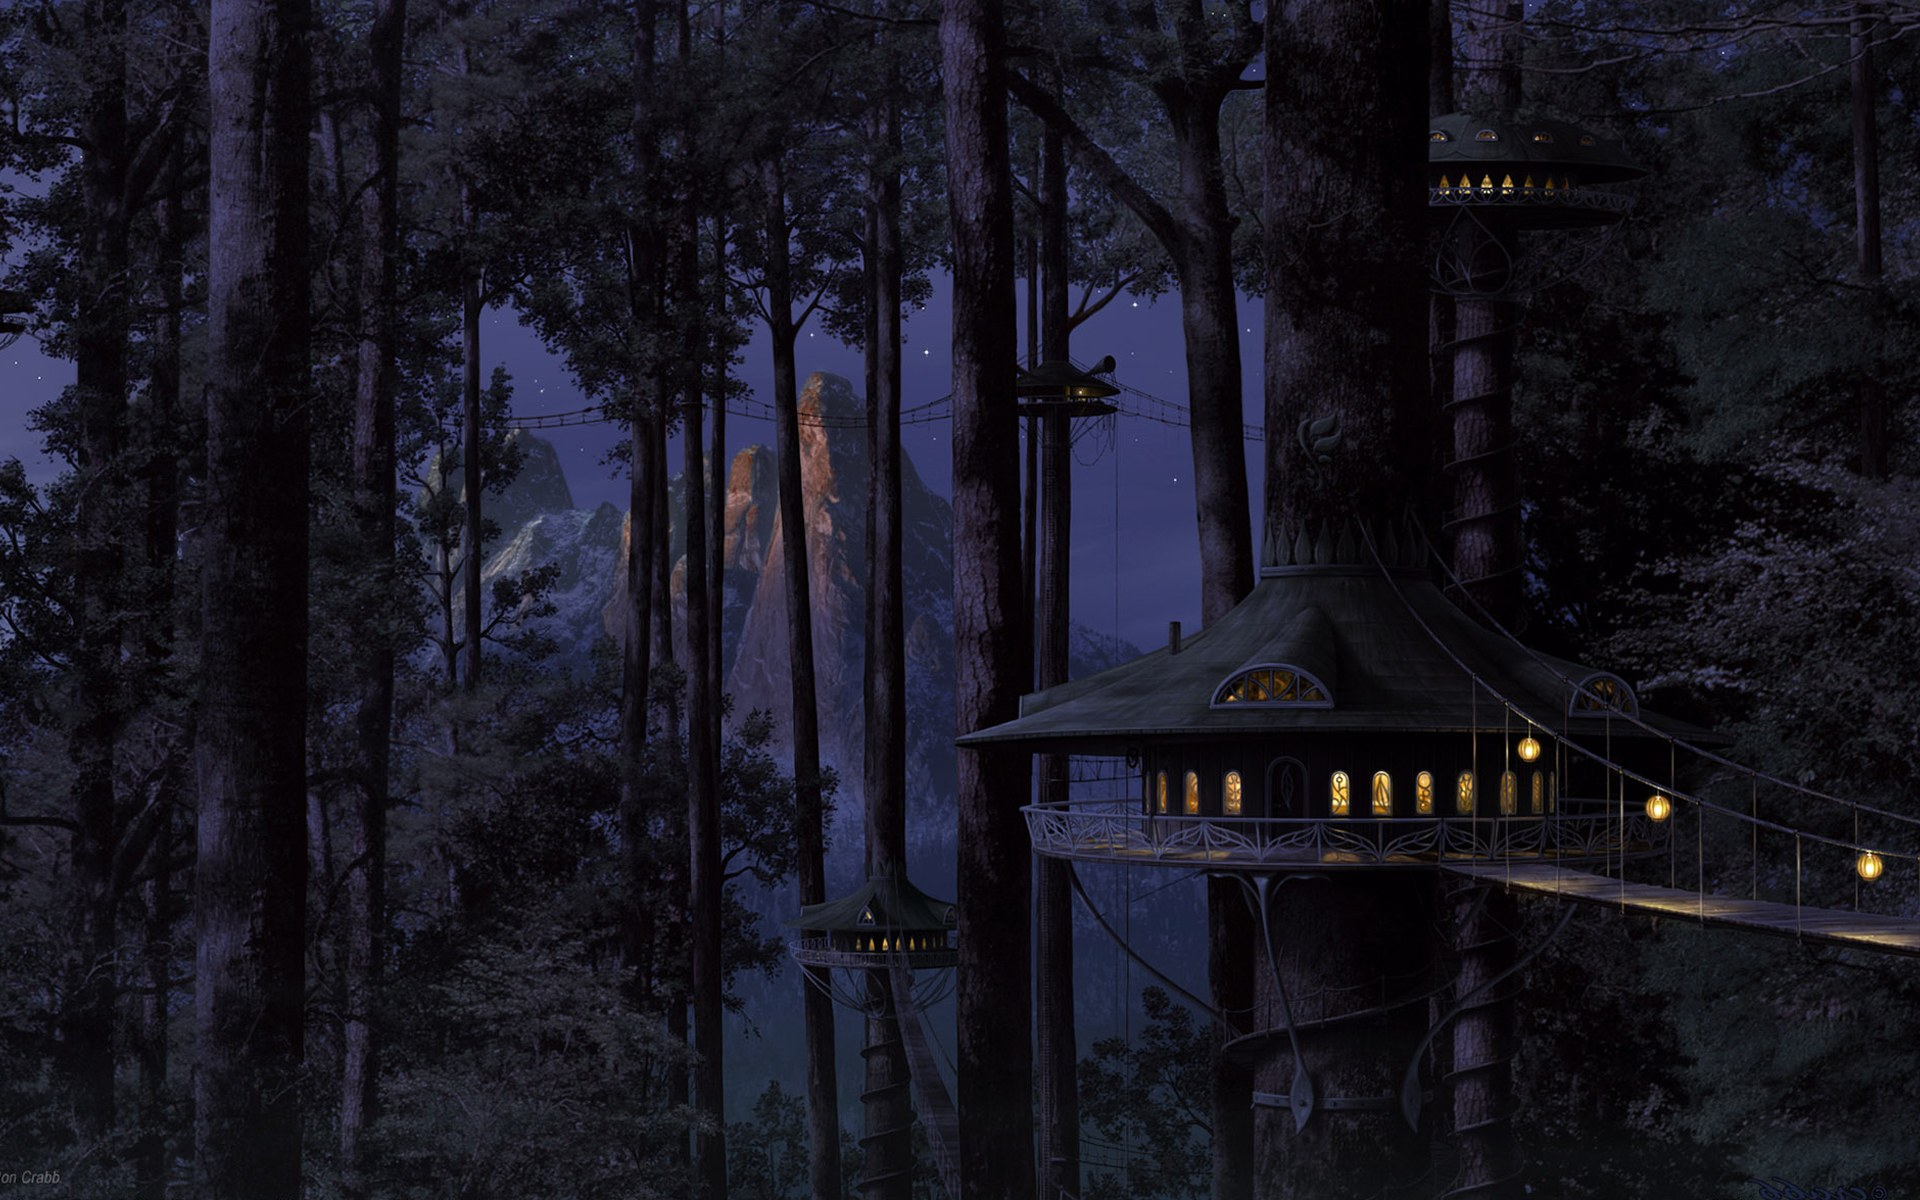 Popular Wallpaper Night Forest - 78425  You Should Have-637031.jpg